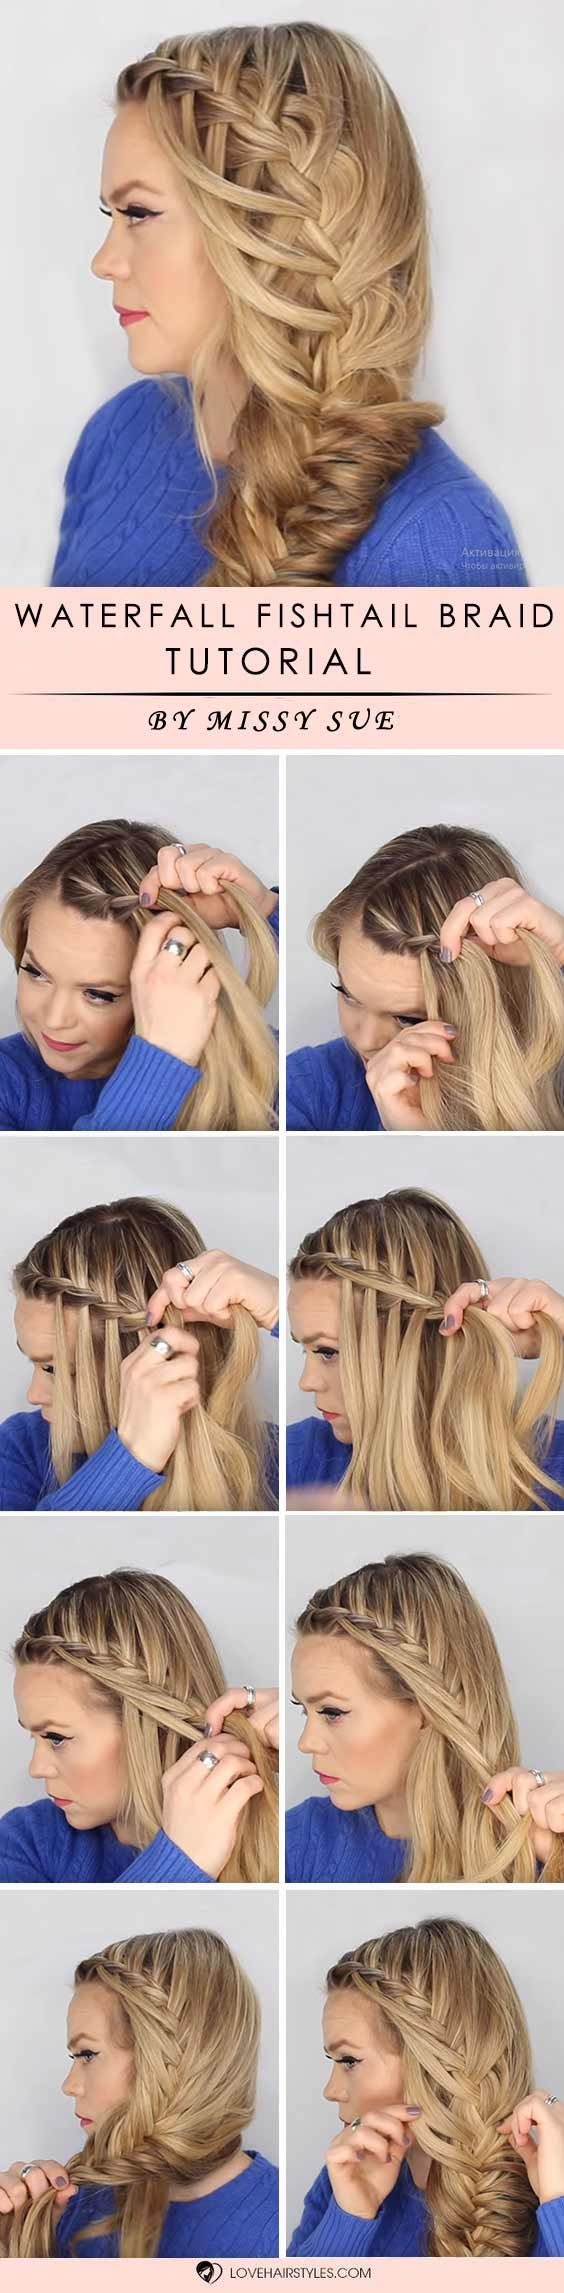 How to braid hair? We all ask this question from time to time, especially when we tried it all already and simple curling and straightening is no fun any longer. We have step by step tutorials that will teach you how to braid your tresses for a super adorable look. Check out our post! Waterfall Into Fishtail Side Braid #braidedhair #howtobraidhair #braidstutorial